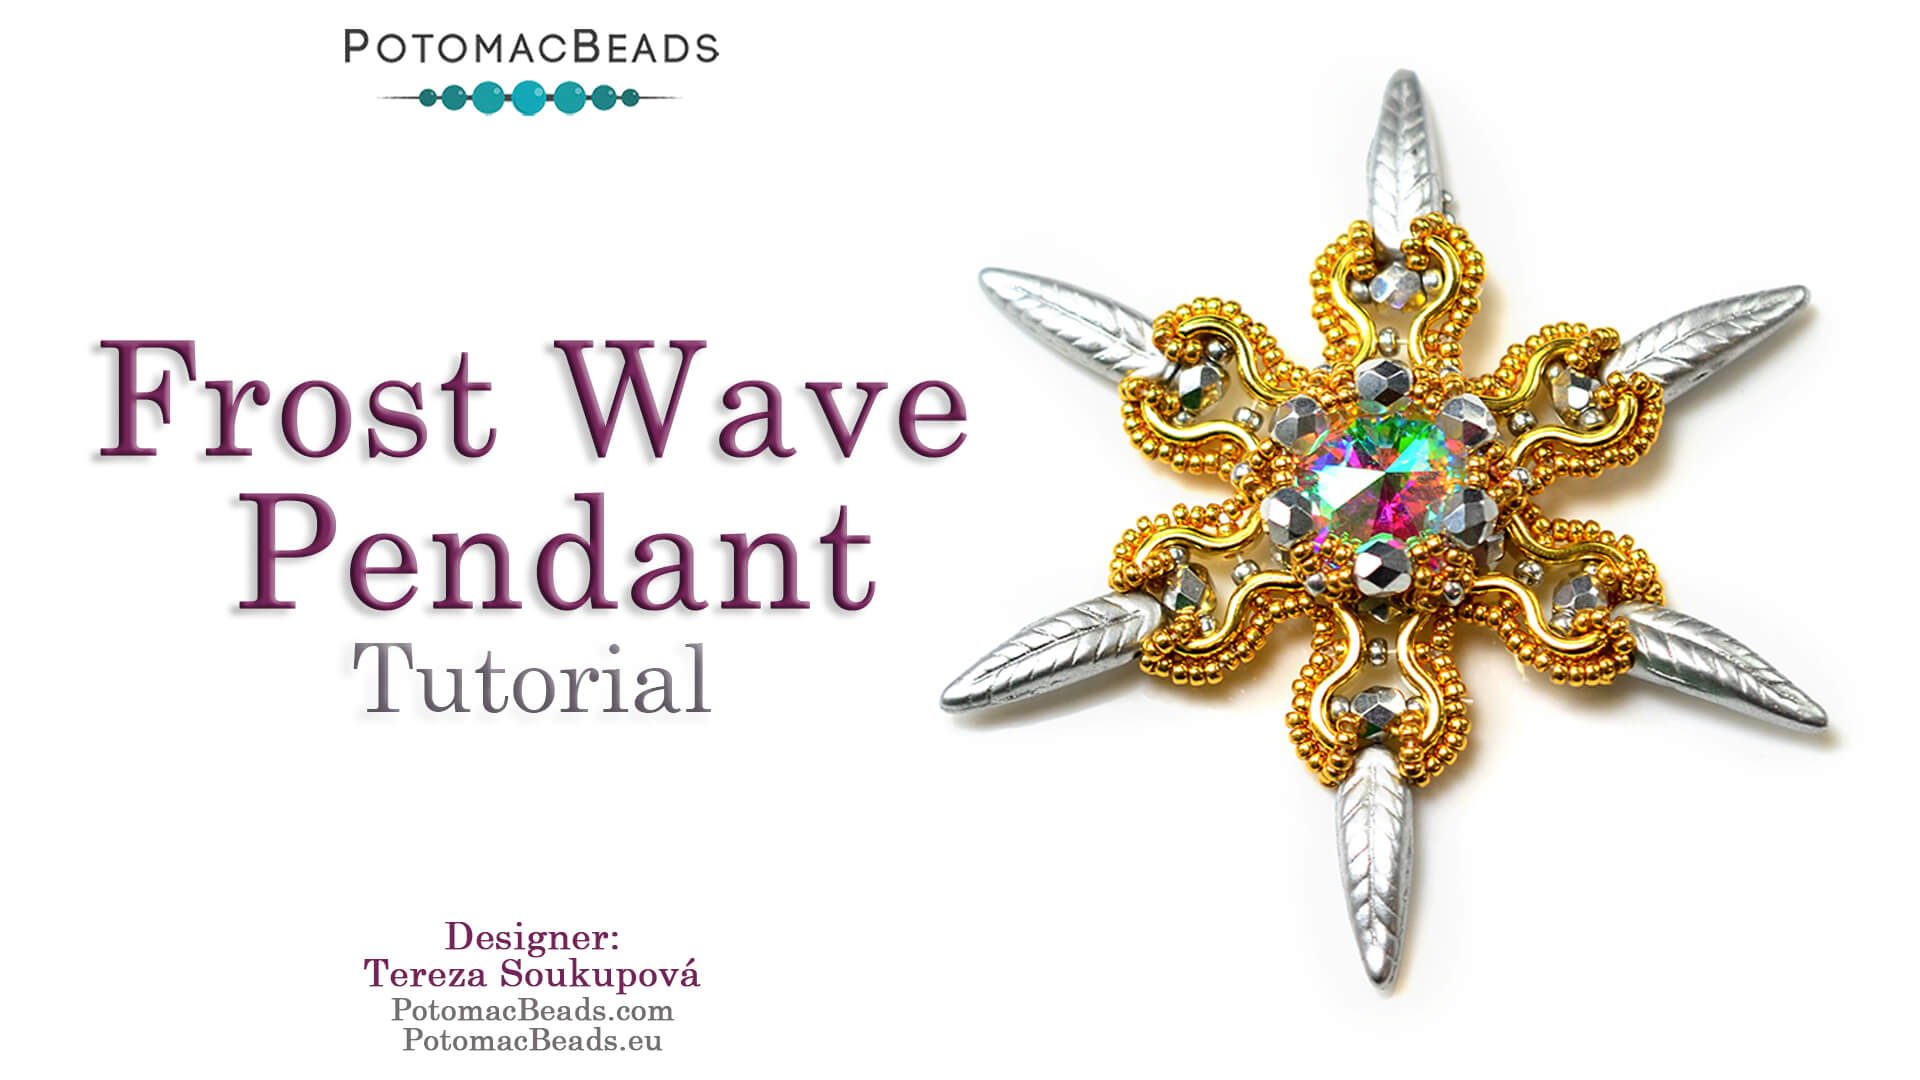 How to Bead Jewelry / Videos Sorted by Beads / All Other Bead Videos / Frost Wave Pendant Tutorial